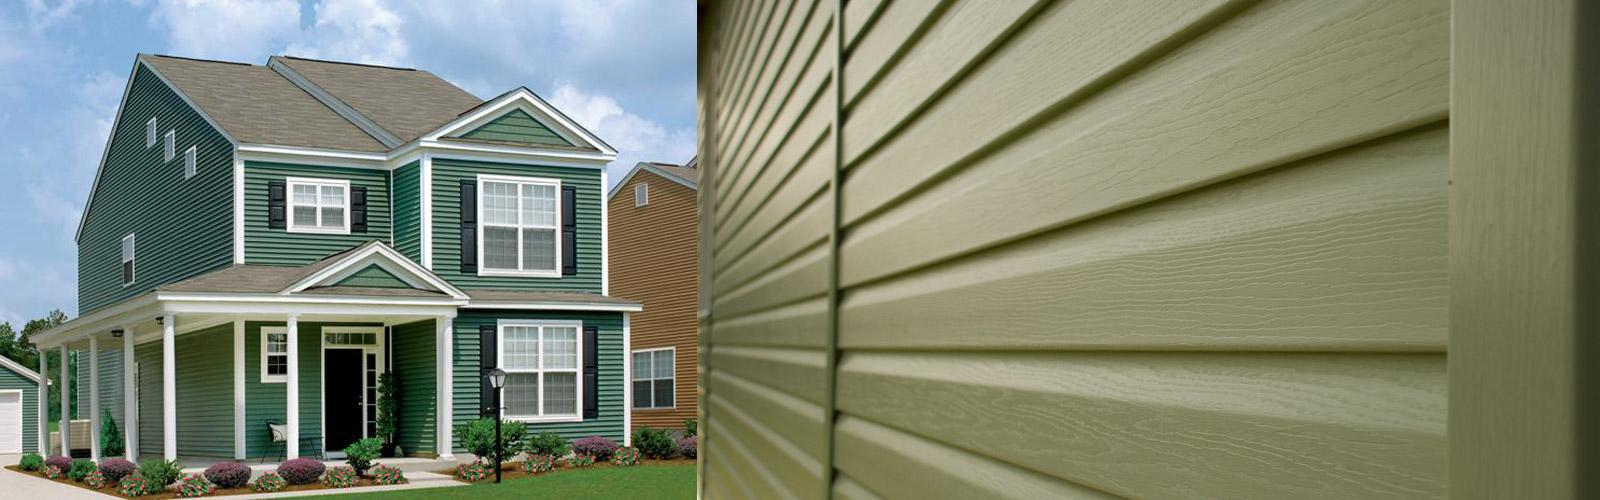 Vinyl Siding Wake Forest, Installation, repairs, James Hardie, masonite replacement services